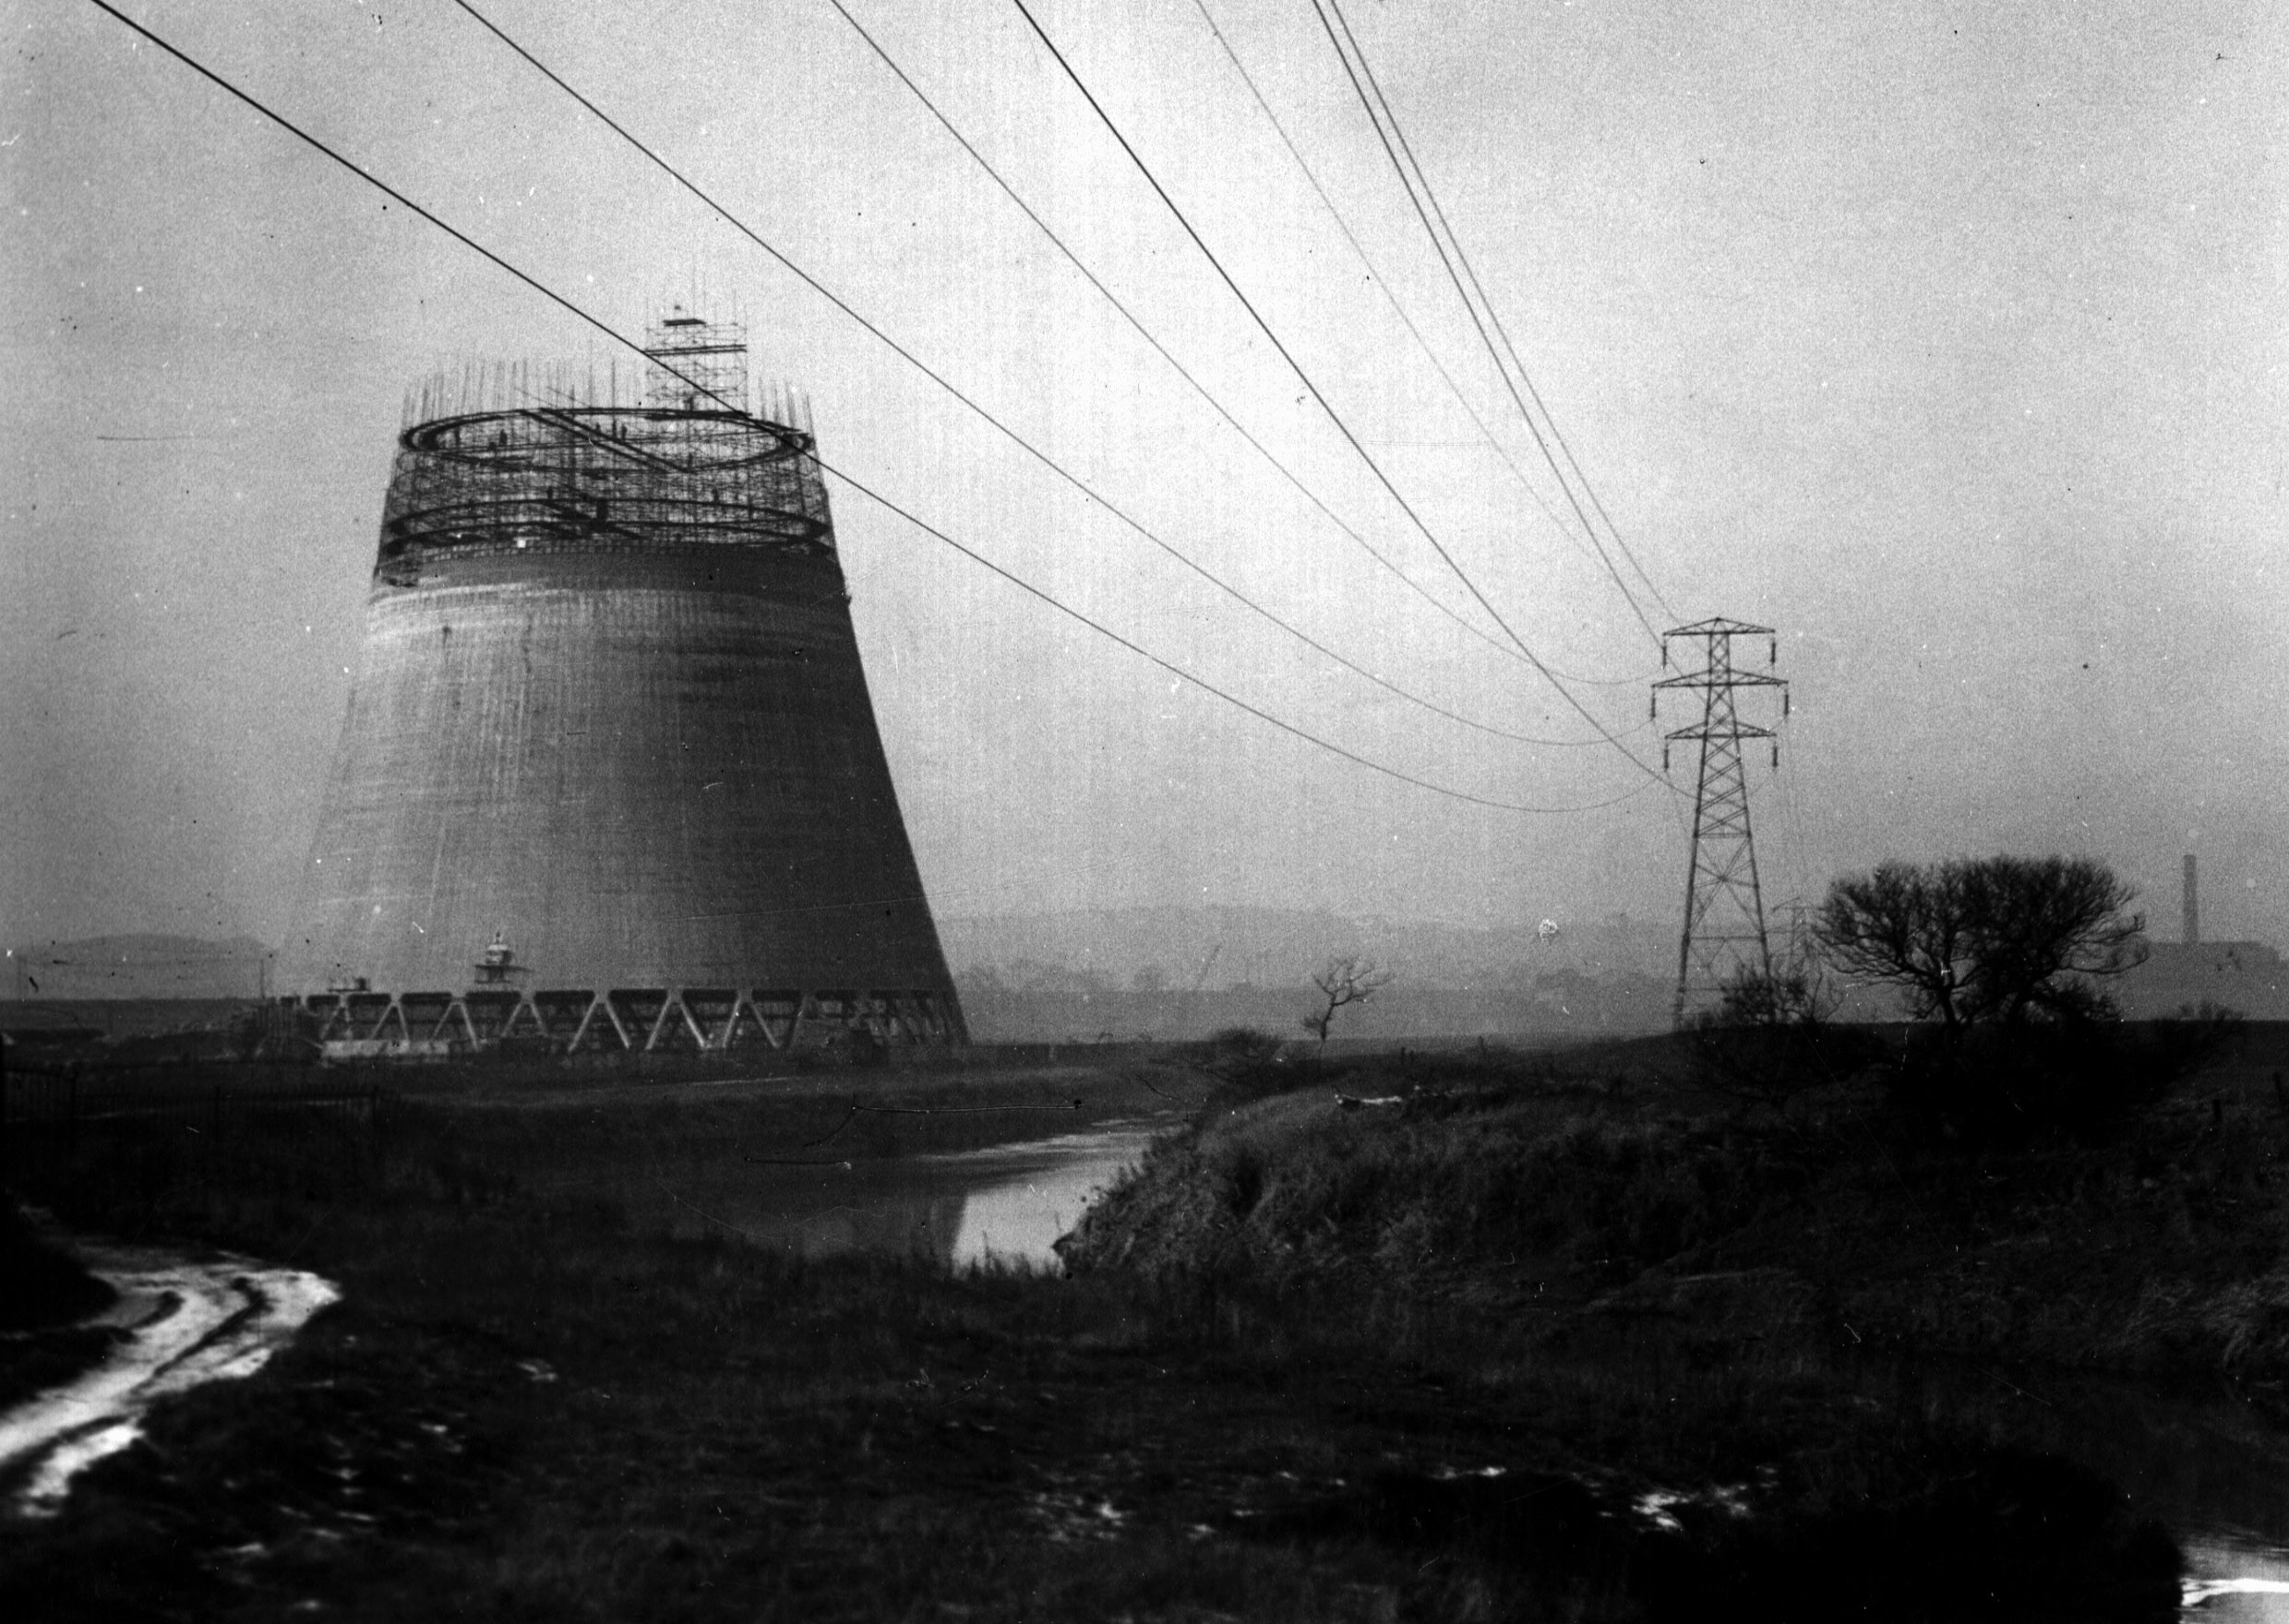 Agecoft Colliery - photo courtesy of Manchester Local Image Collection